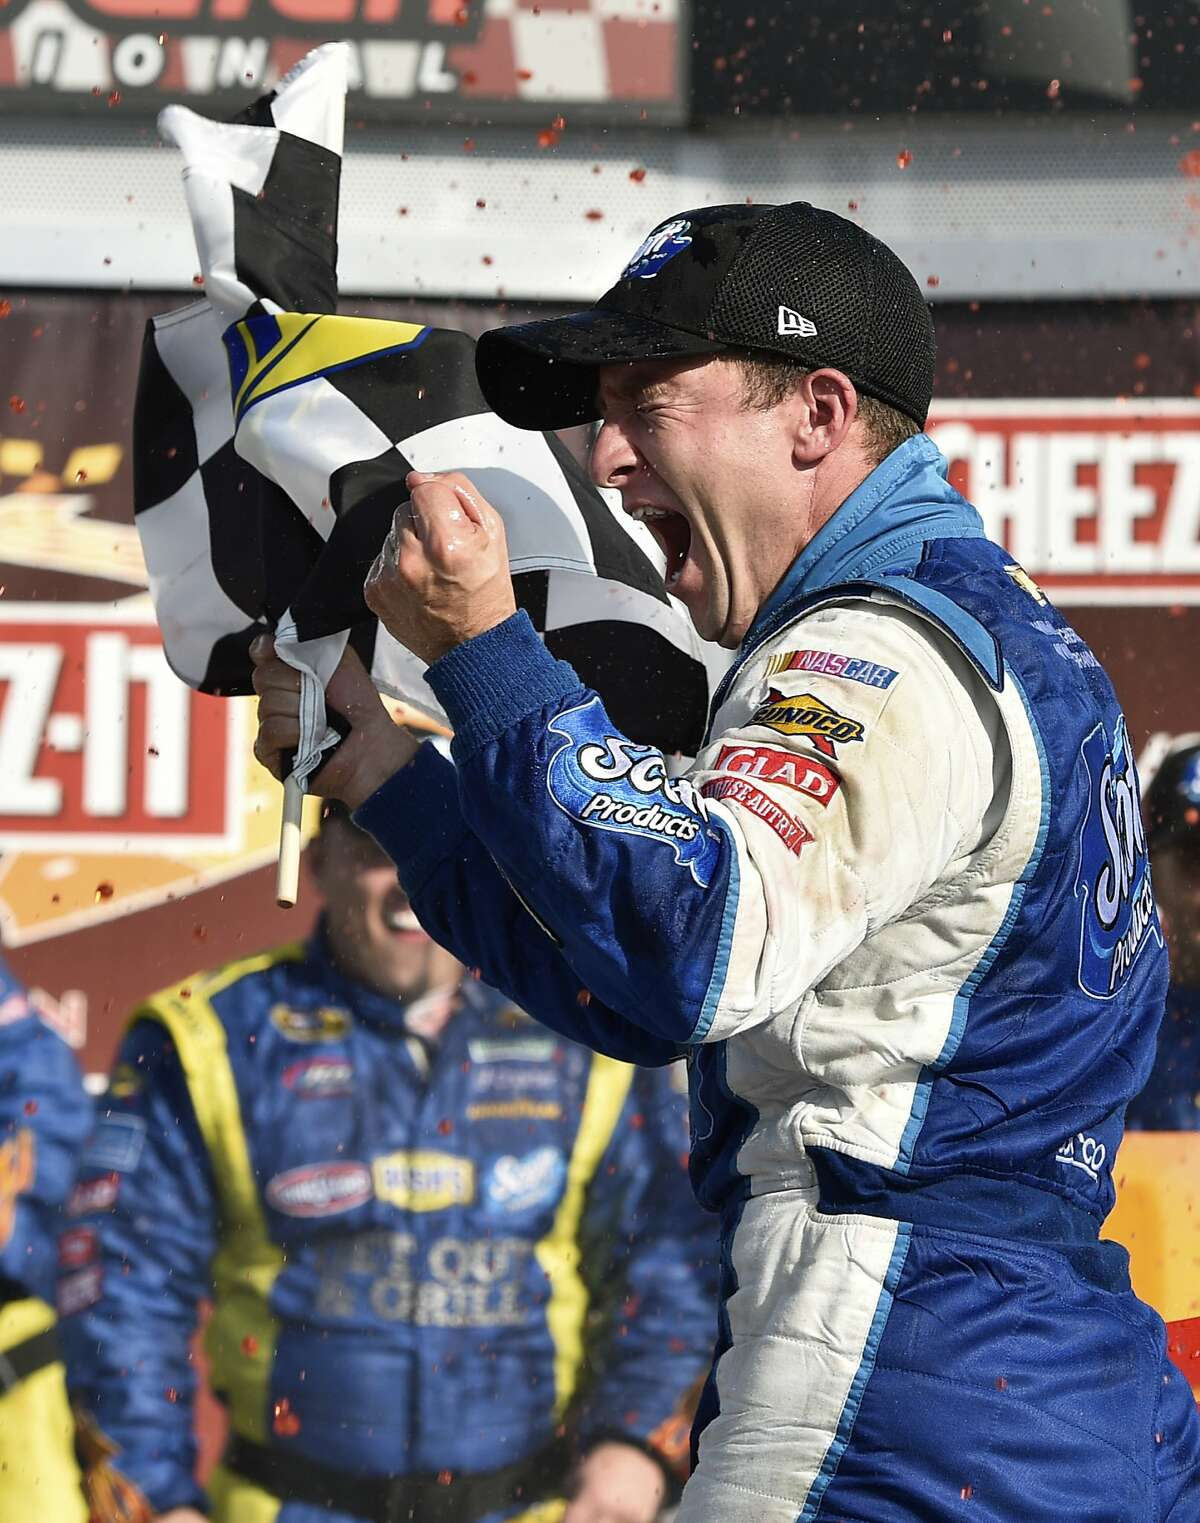 FILE- In this Aug. 10, 2014, file photo, AJ Allmendinger waves the checkered flag as he celebrates in Victory Lane after winning a NASCAR Sprint Cup series auto race at Watkins Glen International in Watkins Glen, N.Y. Allmendinger returns to Watkins Glen on Sunday, Aug. 6, where he can use a win to qualify for NASCAR's postseason. (AP Photo/Derik Hamilton, File)